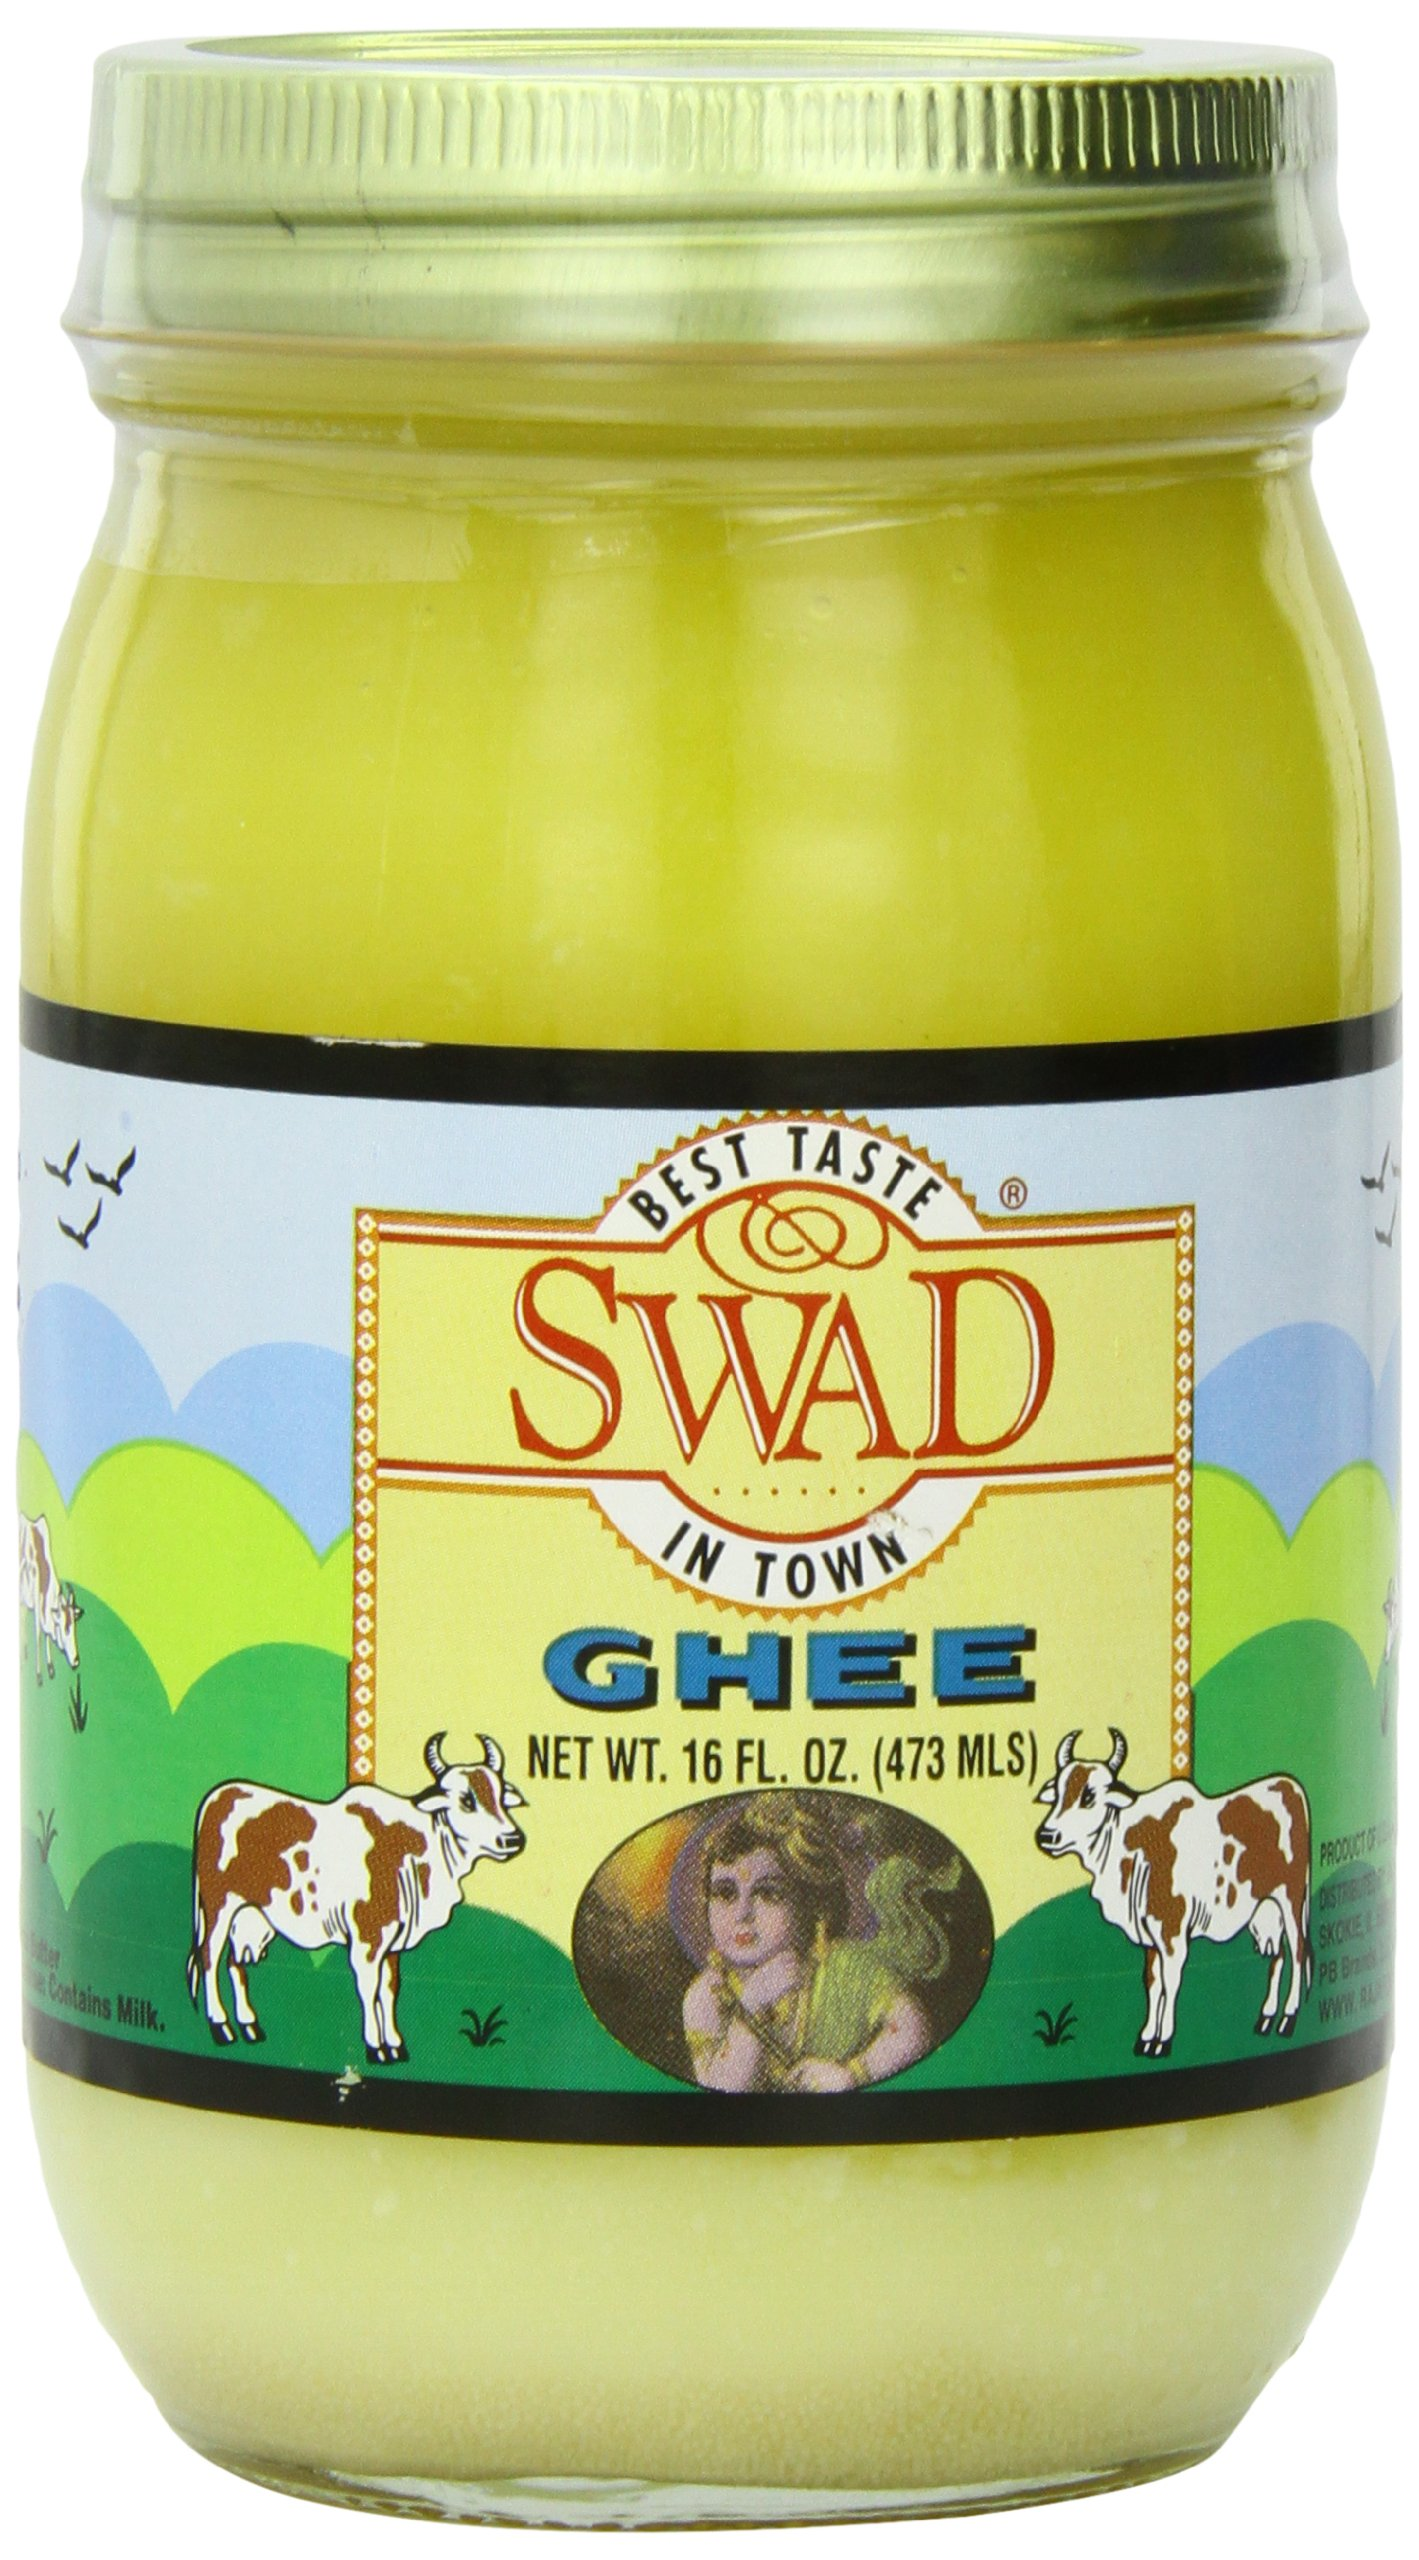 Swad Butter Ghee (Clarified Butter), 16.0 Ounce